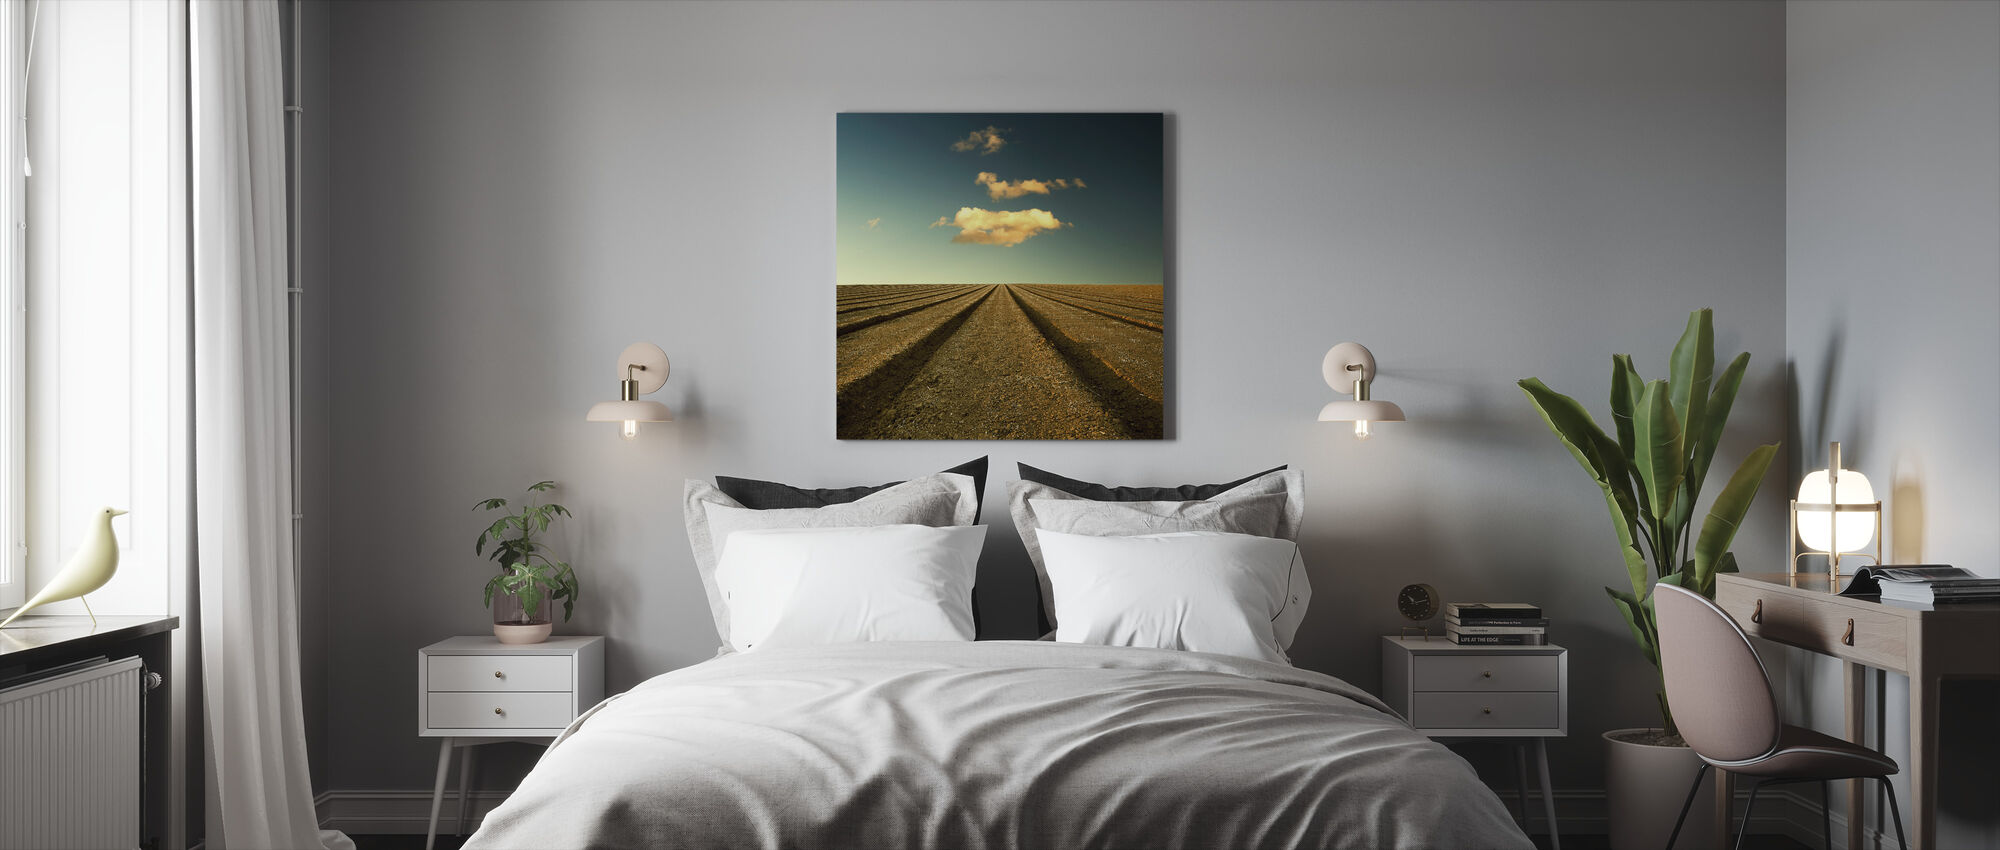 Ploughed Field and Sky - Canvas print - Bedroom